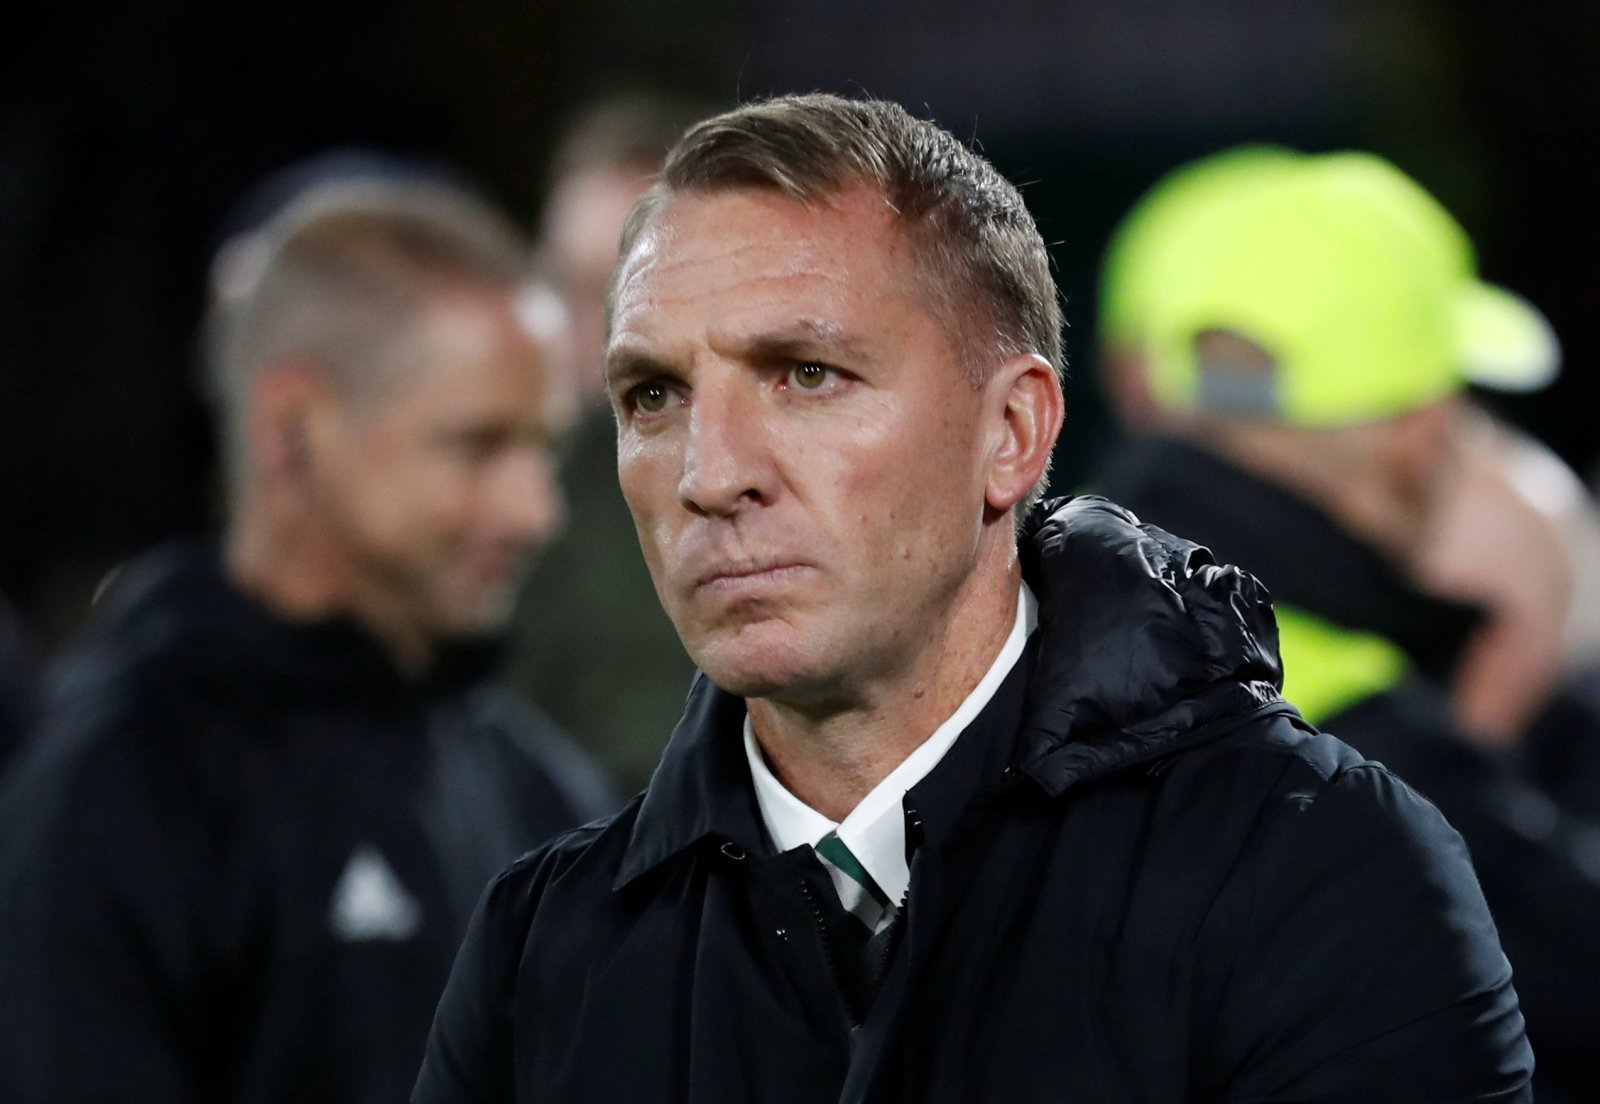 Celtic fans on Twitter were quick to point out club's woes after Hibs hammering